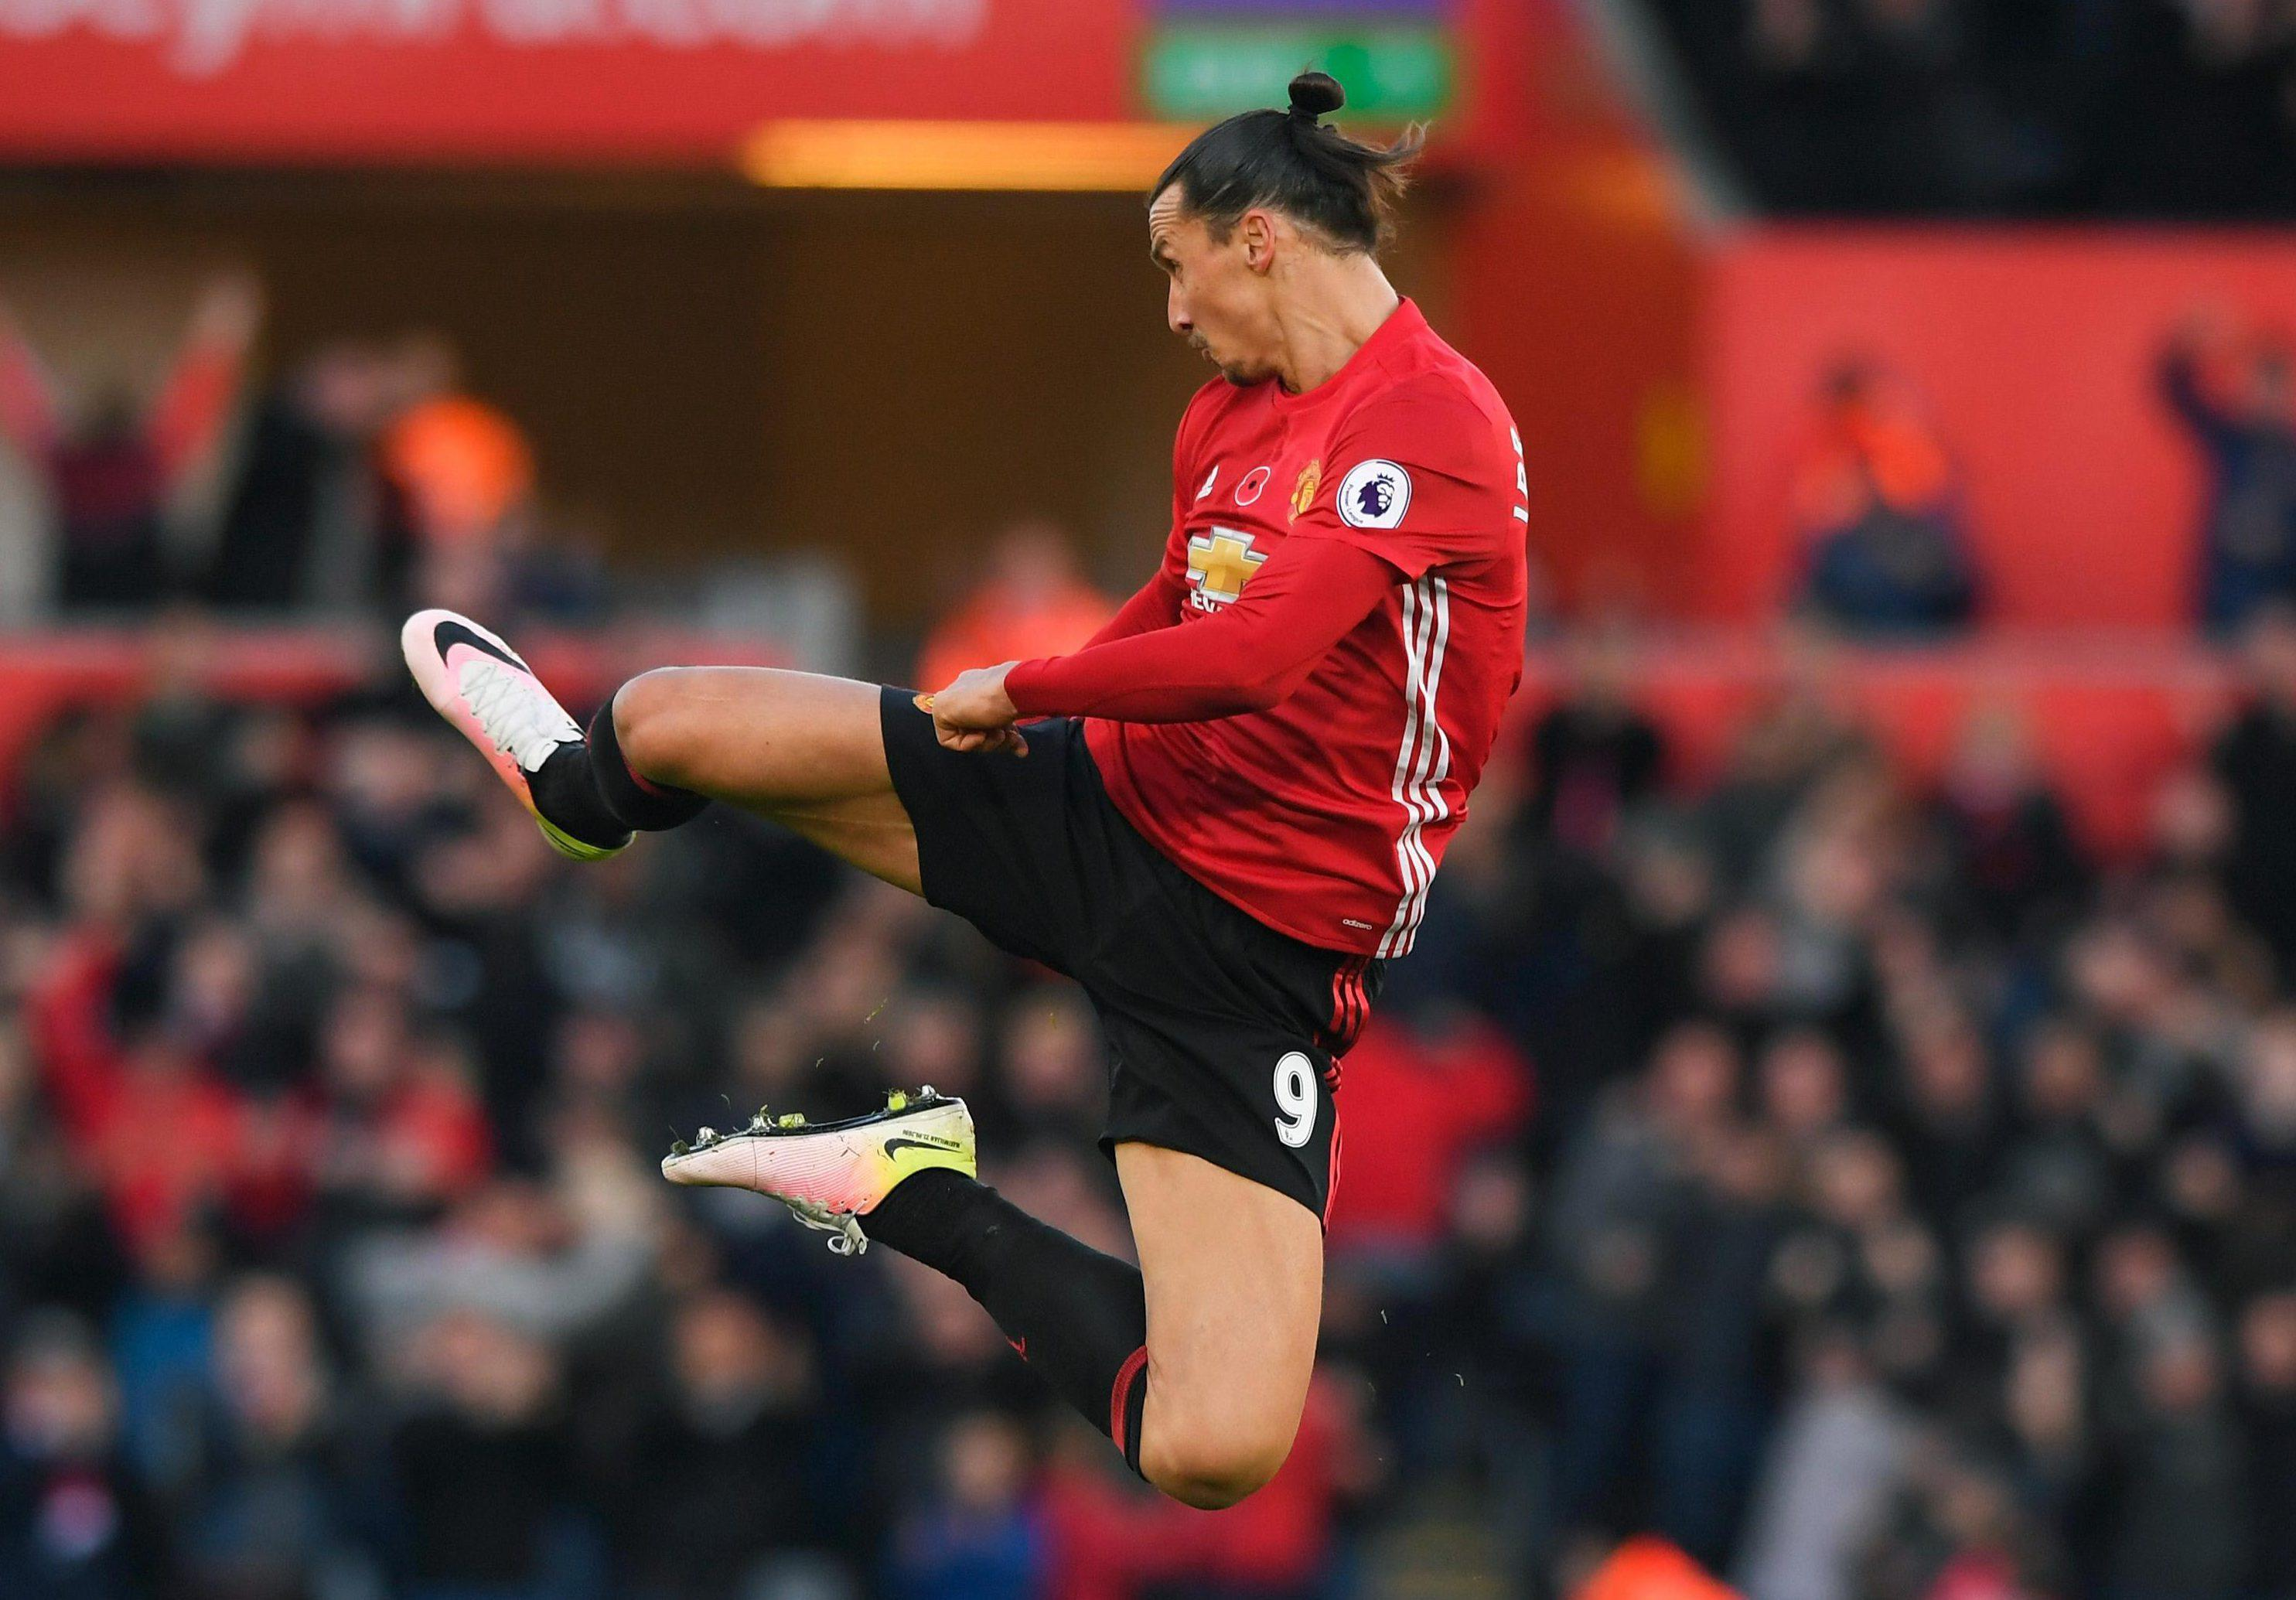 Zlatan Ibrahimovic has been hailed for his physical prowess by the surgeon who operated on his knee